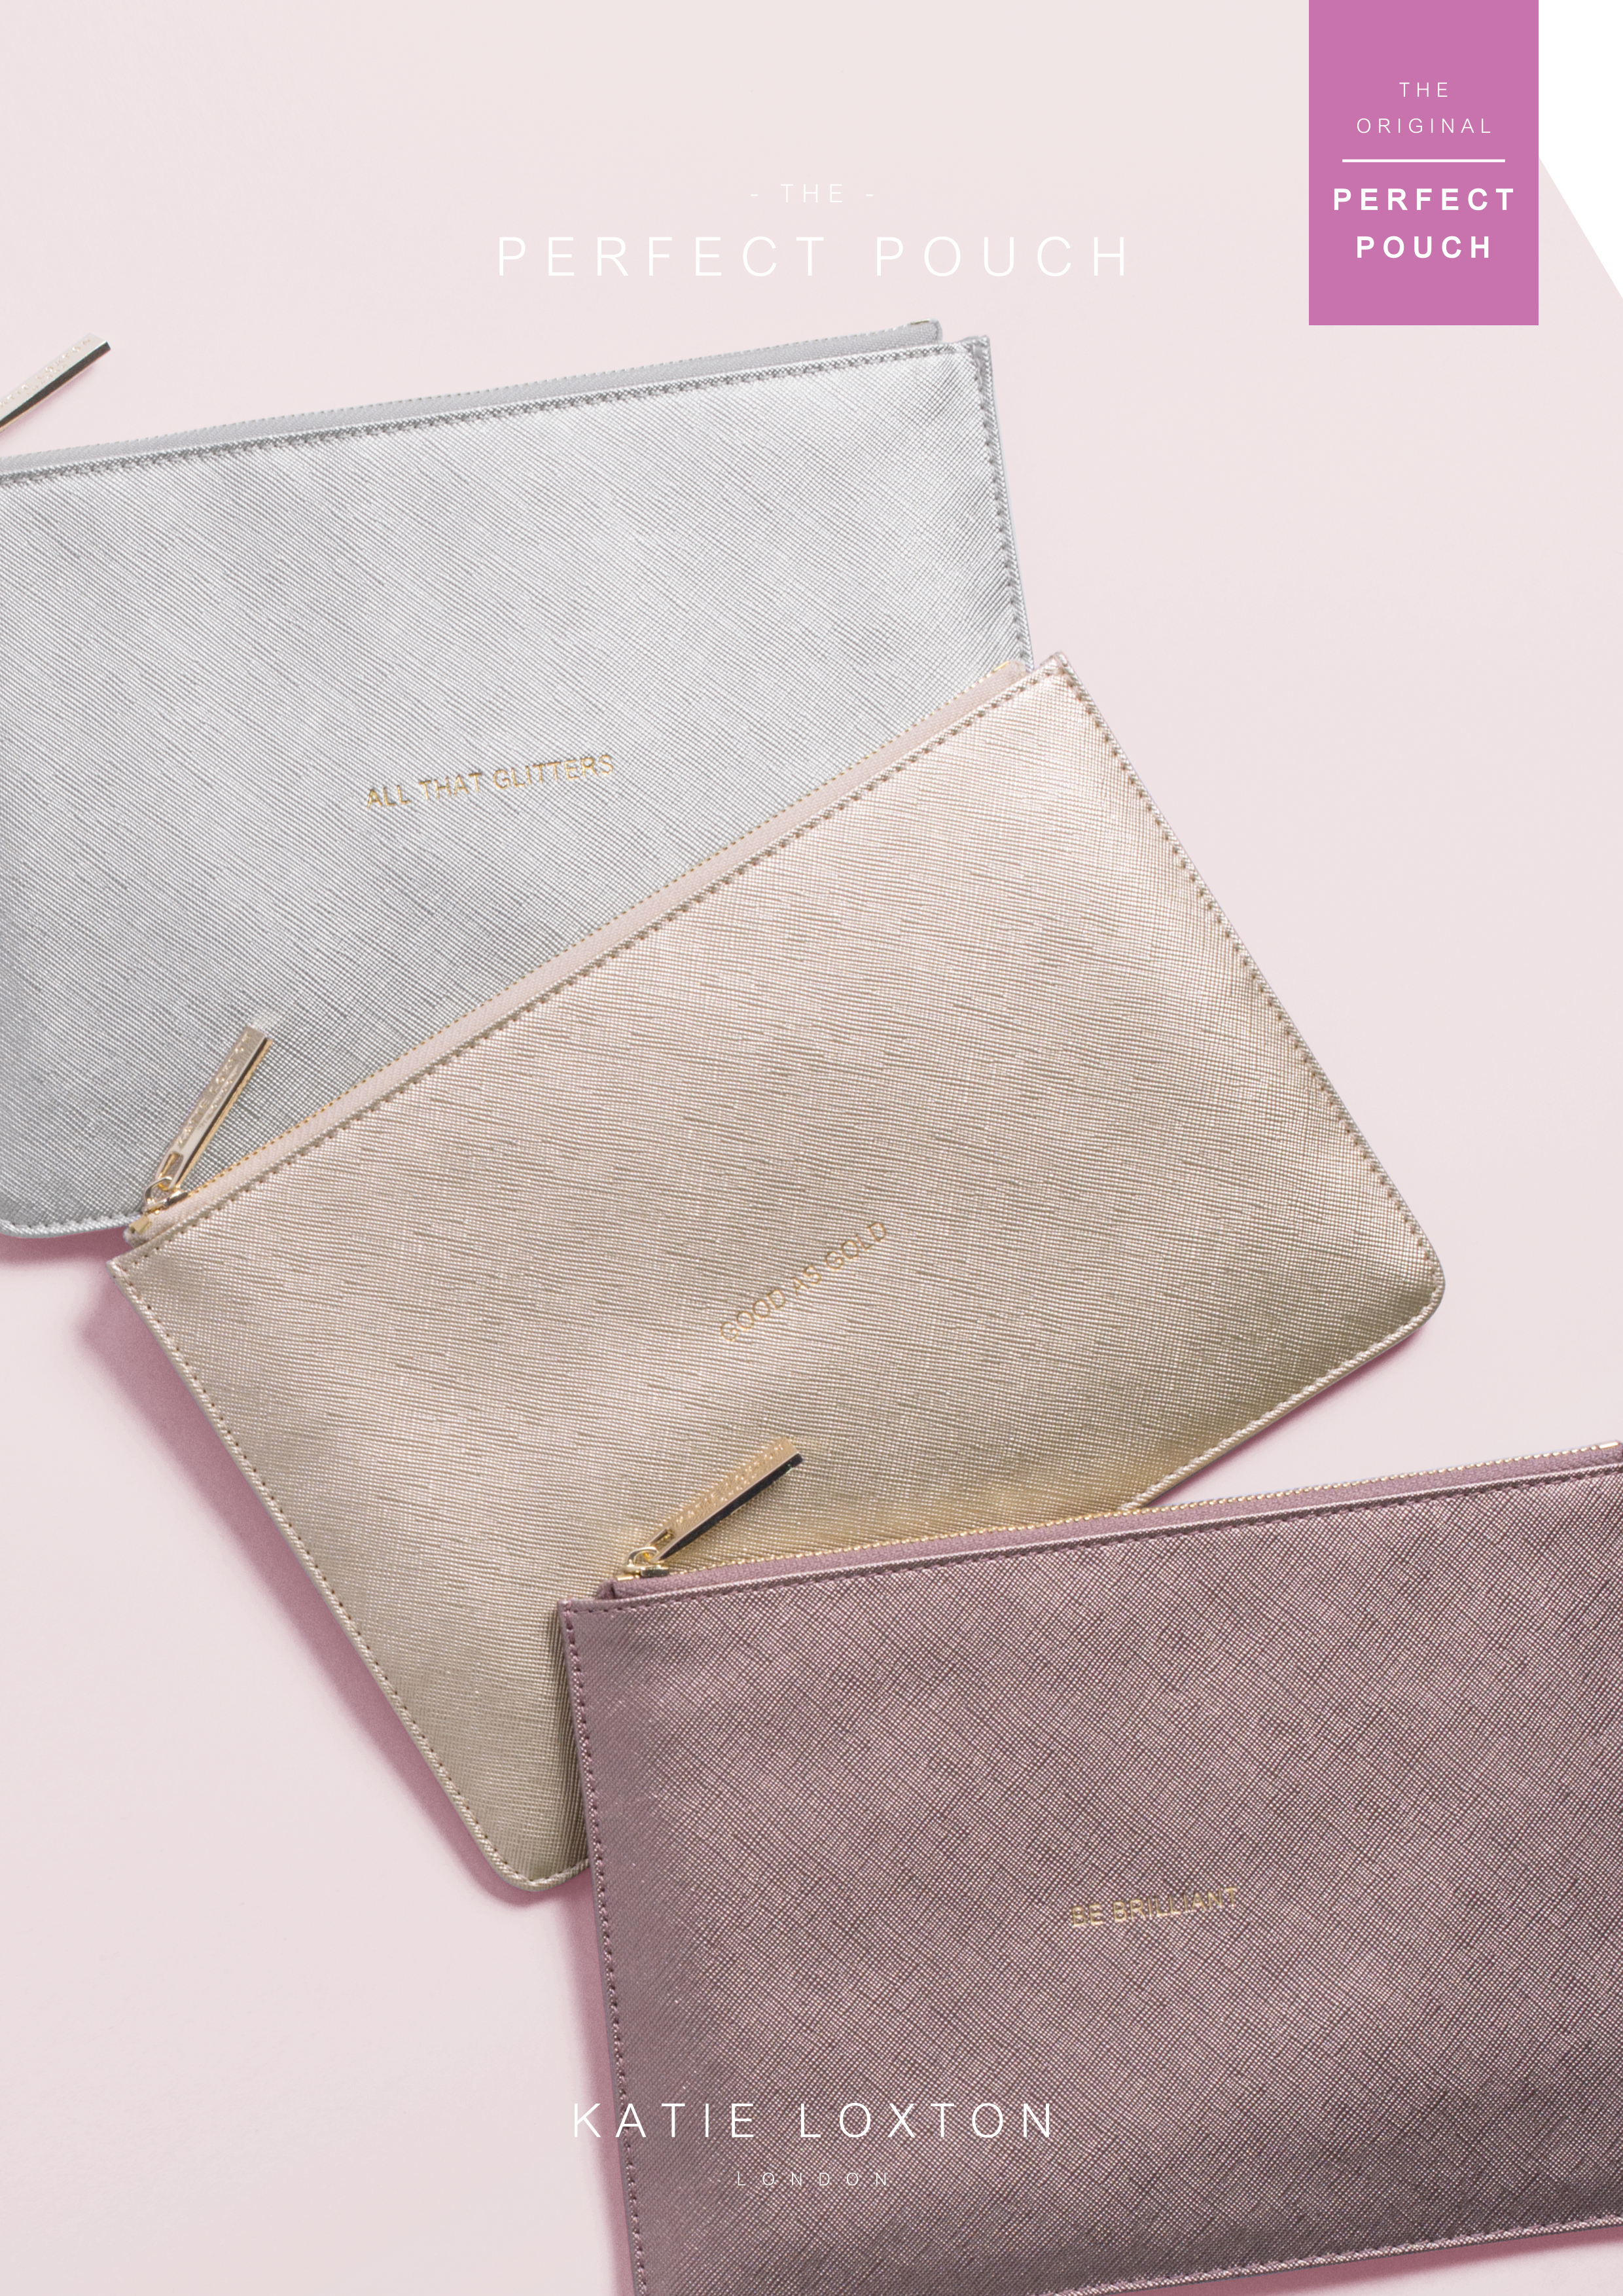 Katie Loxton Perfect Pouch gold shimmer /'HELLO WEEKEND/' with gift bag and tag